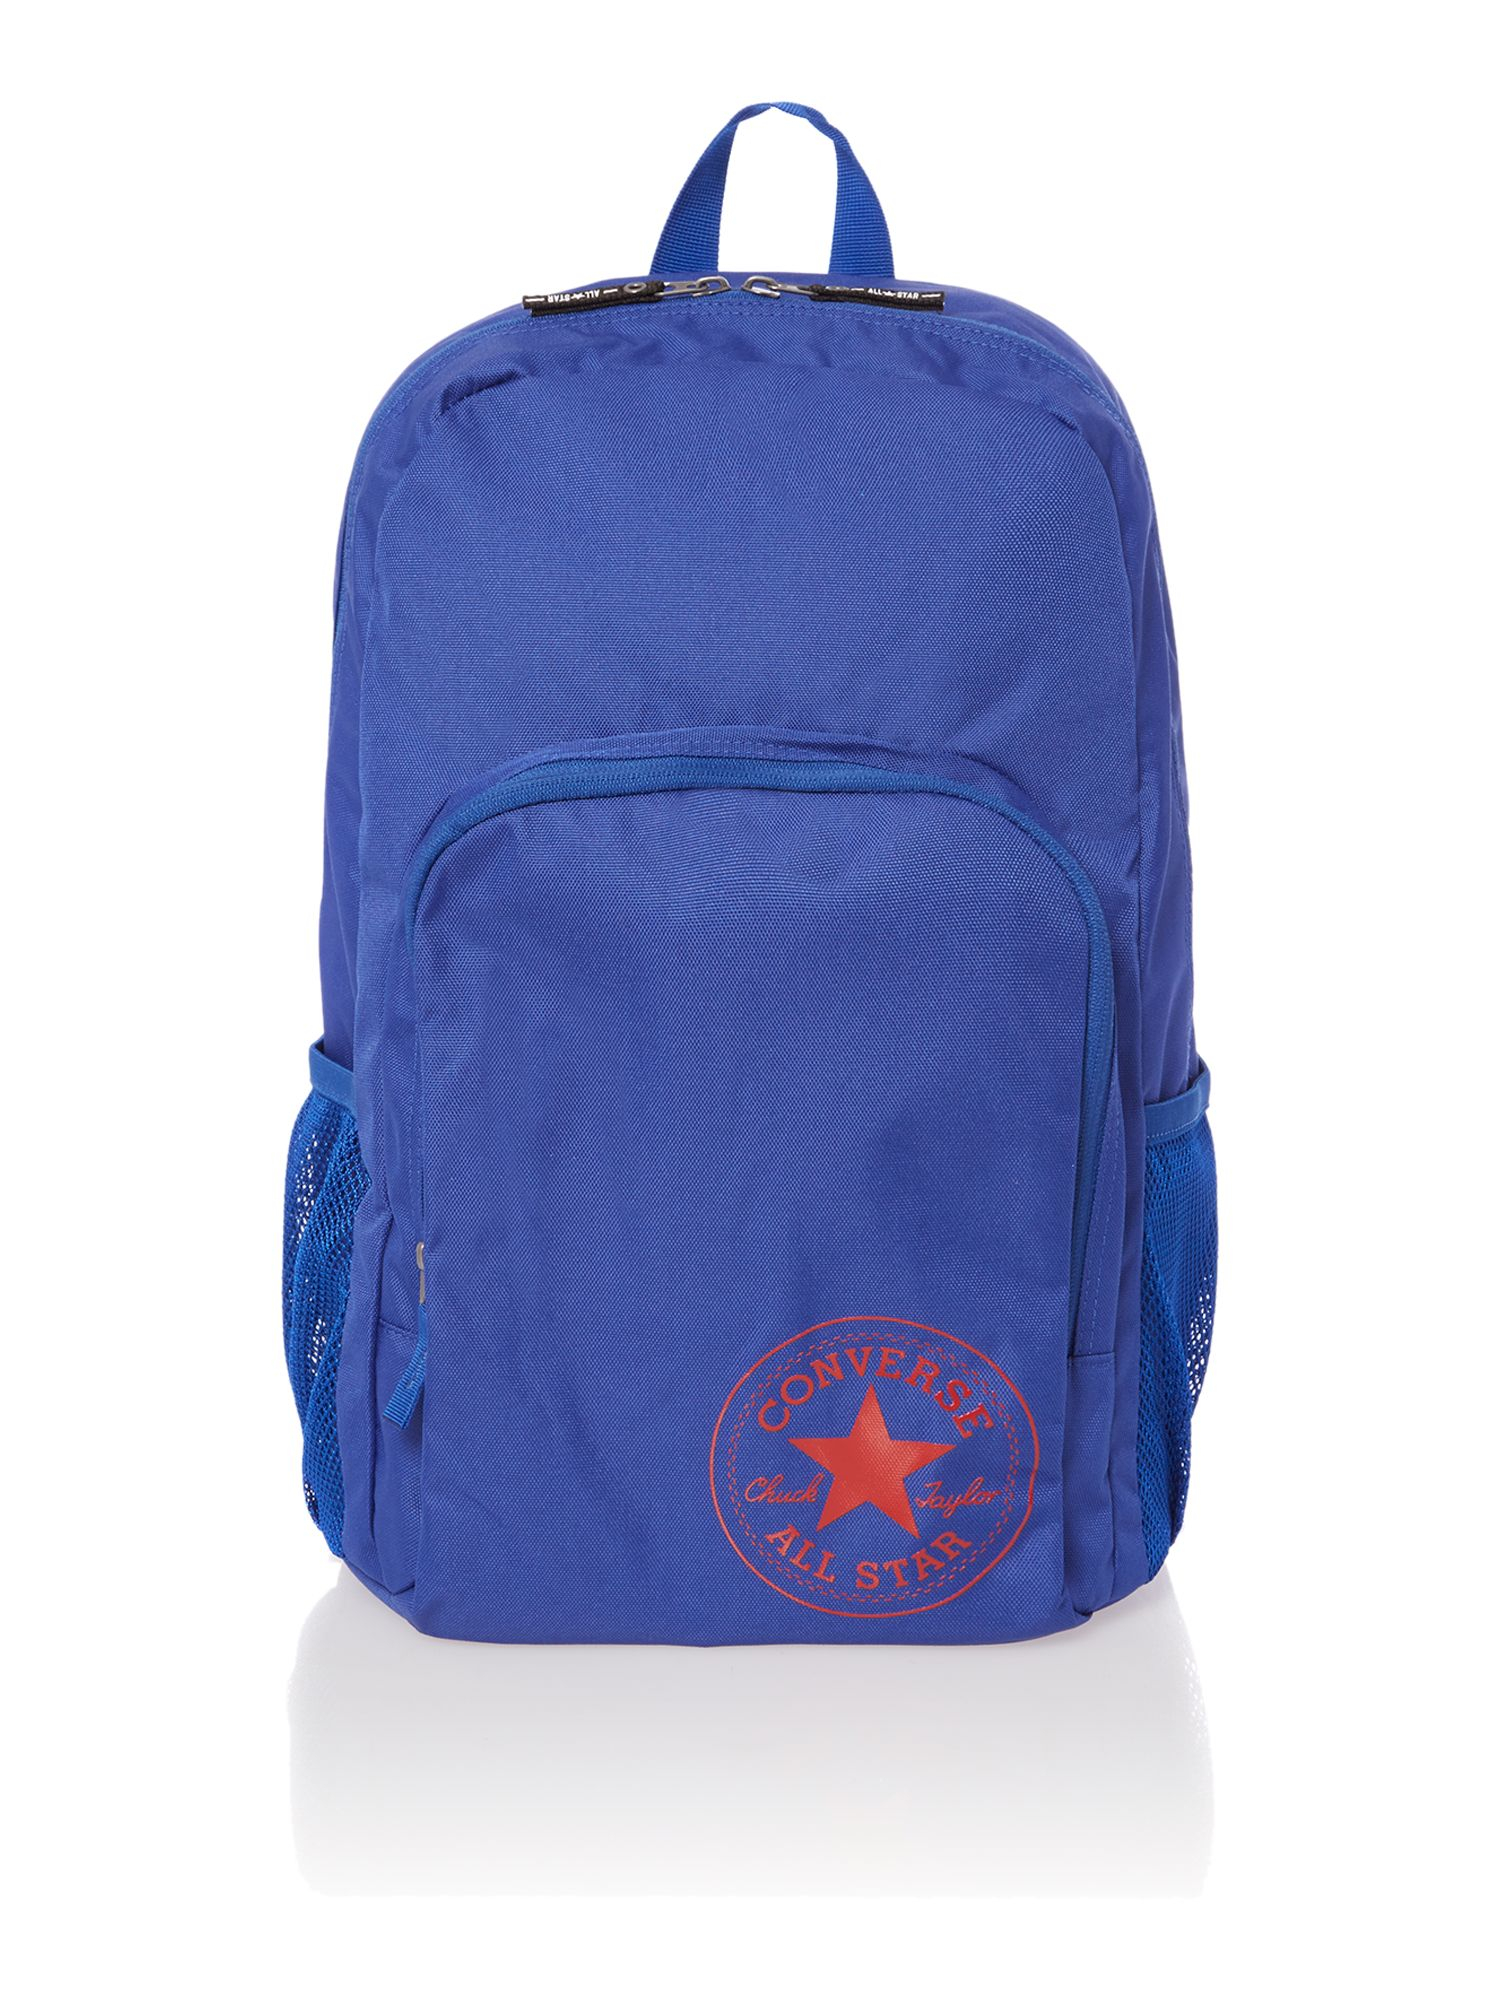 Lyst - Converse All in Two Backpack in Blue for Men dbb2729107d2a